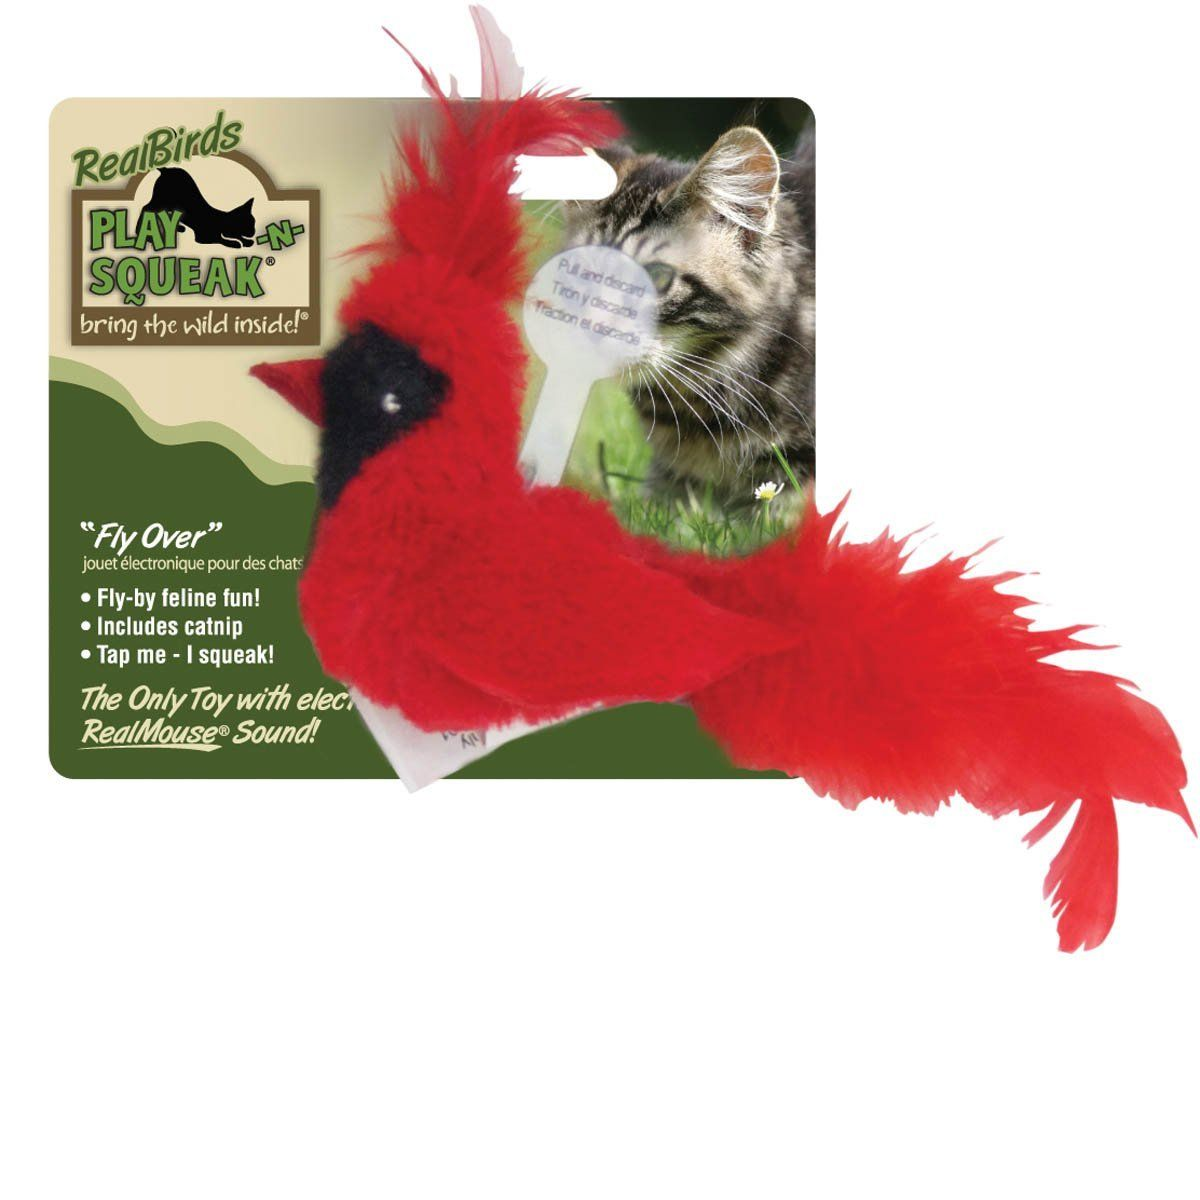 Ourpets Play N Squeak Real Birds Fly Over Interactive Cat Toy You Can Get More Details Here Cat To Interactive Cat Toys Best Interactive Cat Toys Cat Toys